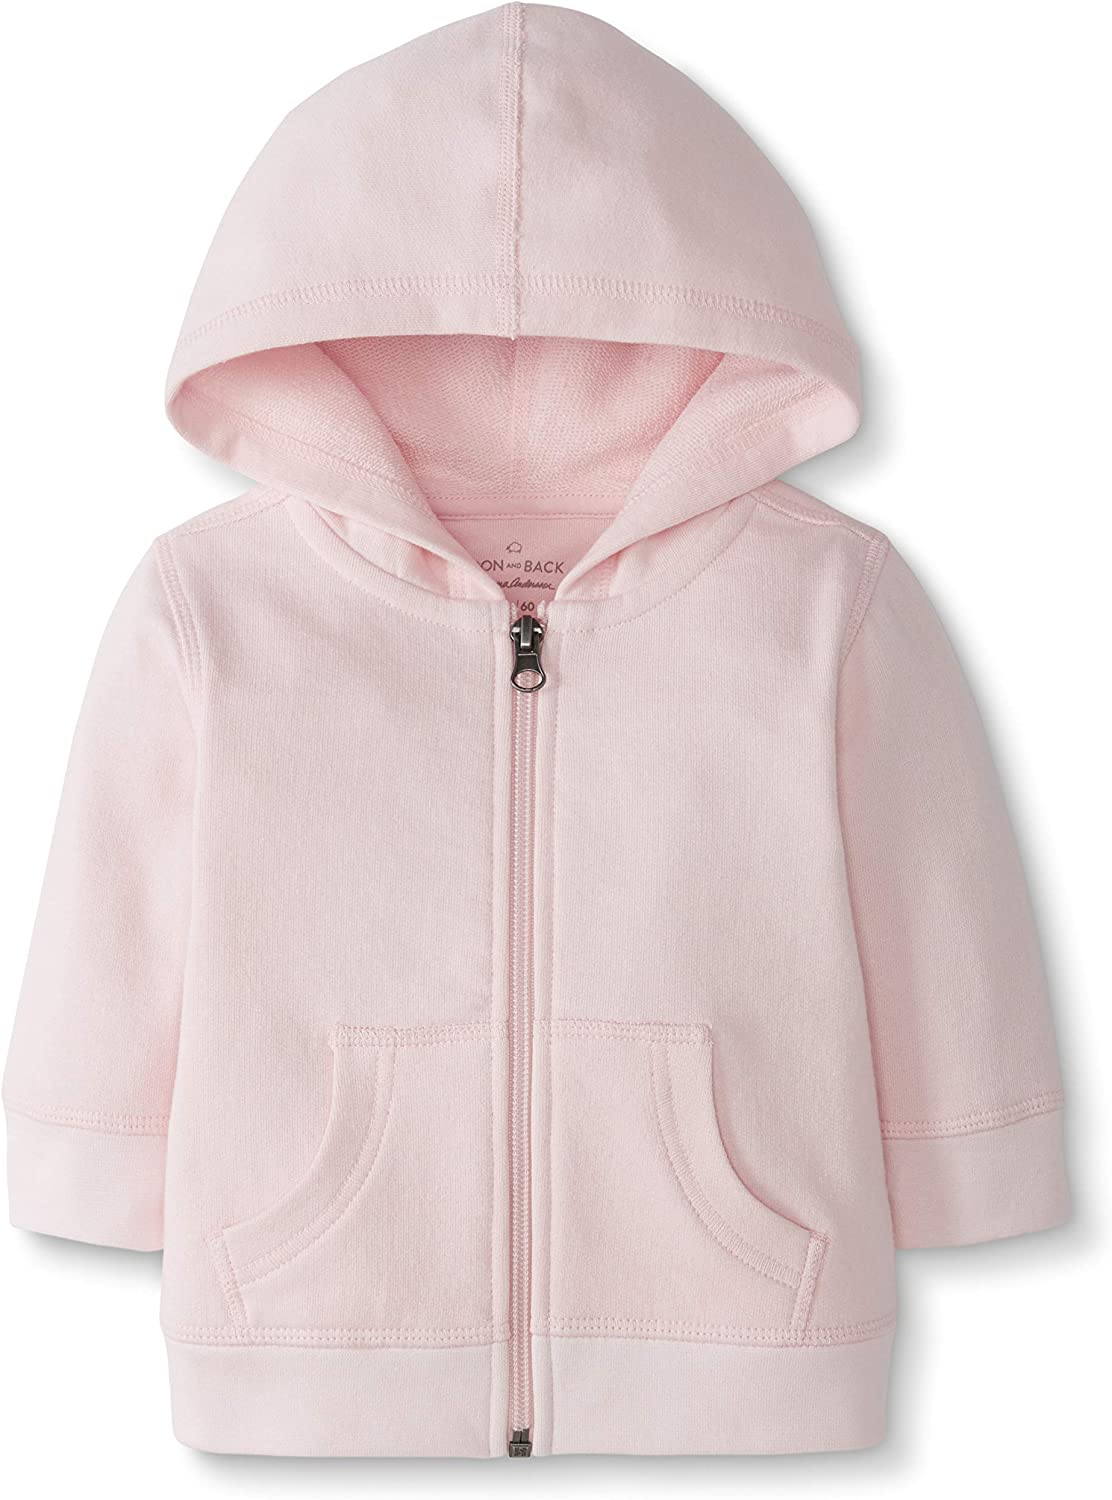 Moon and Back by Hanna Andersson Baby Hooded Sweatshirt Pink 0-3 months